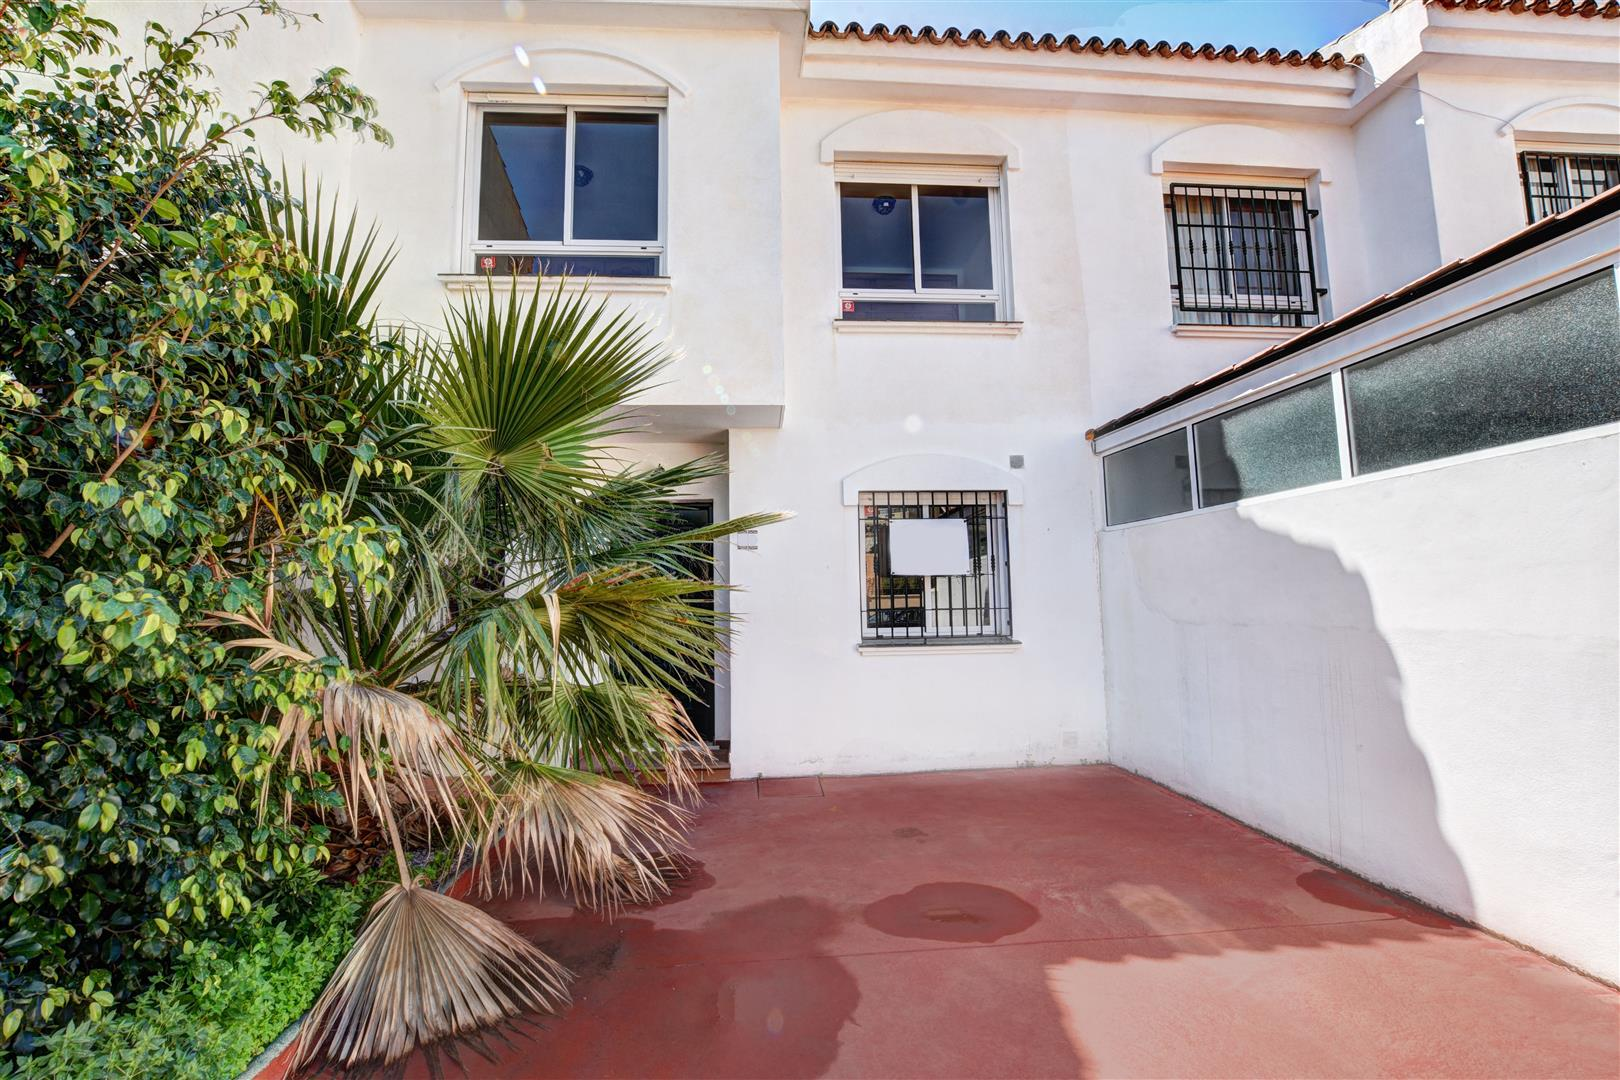 Townhouse for Sale in Arroyo de la Miel - front